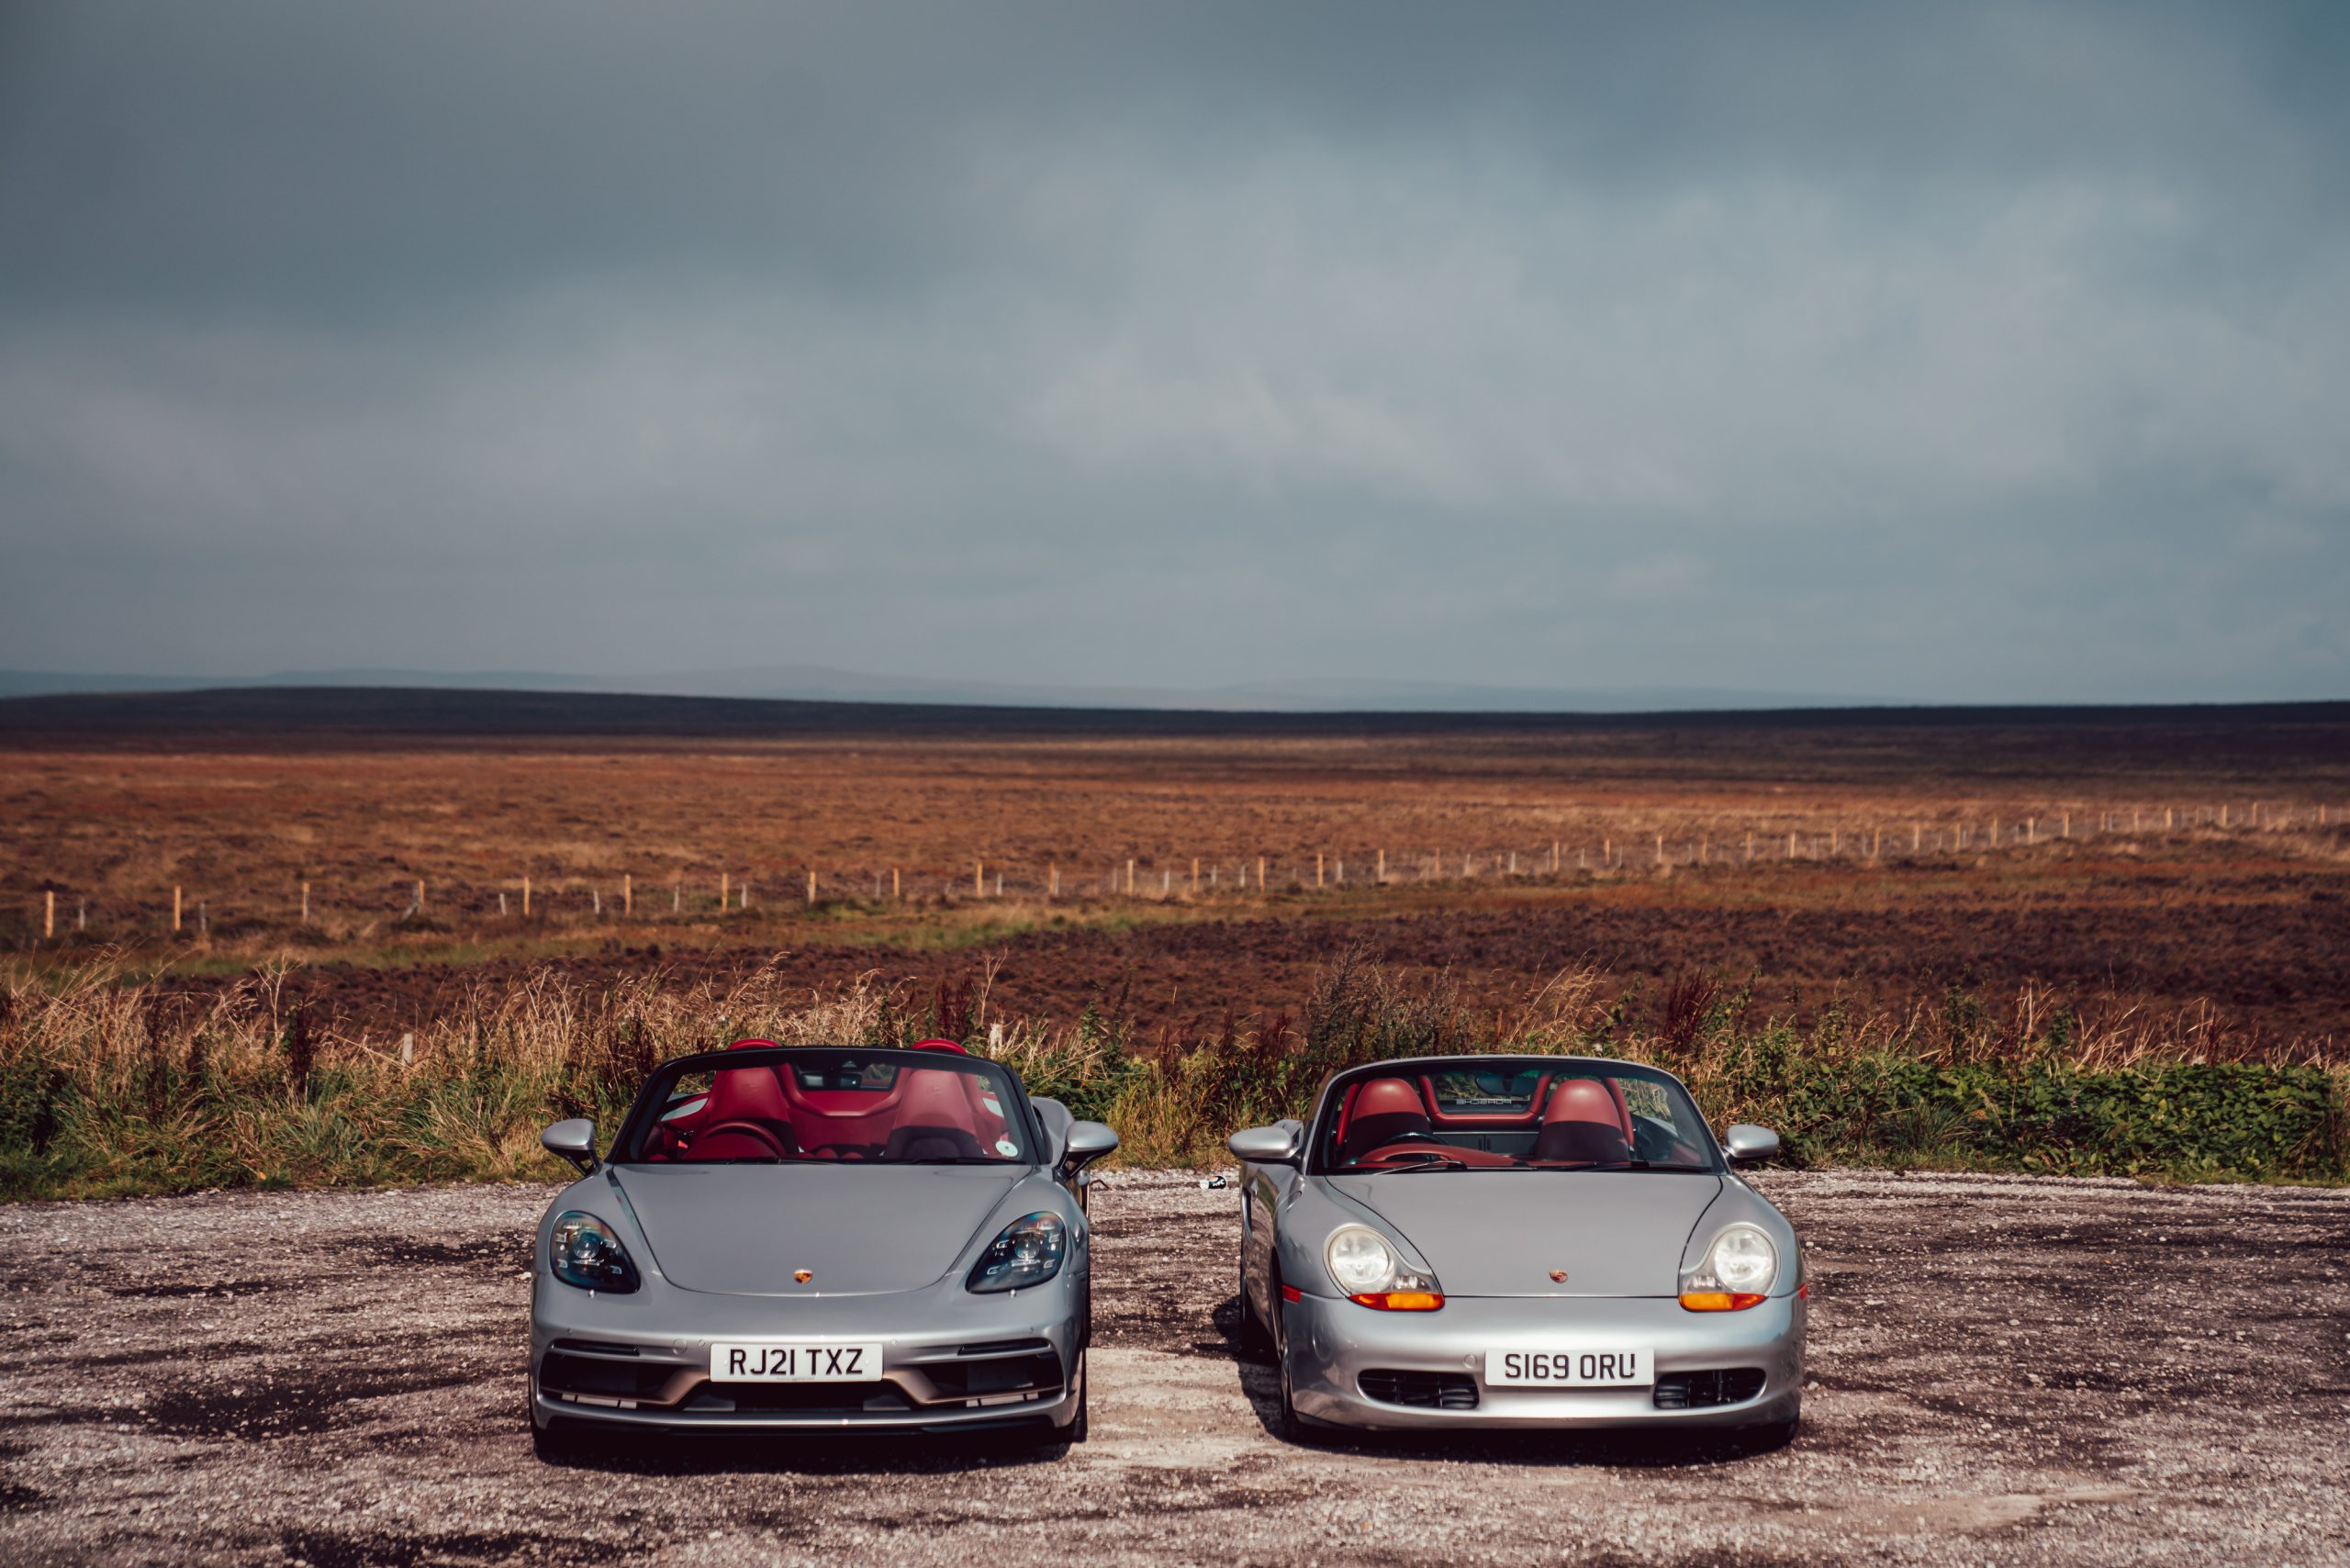 Porsche Boxster at 25 years